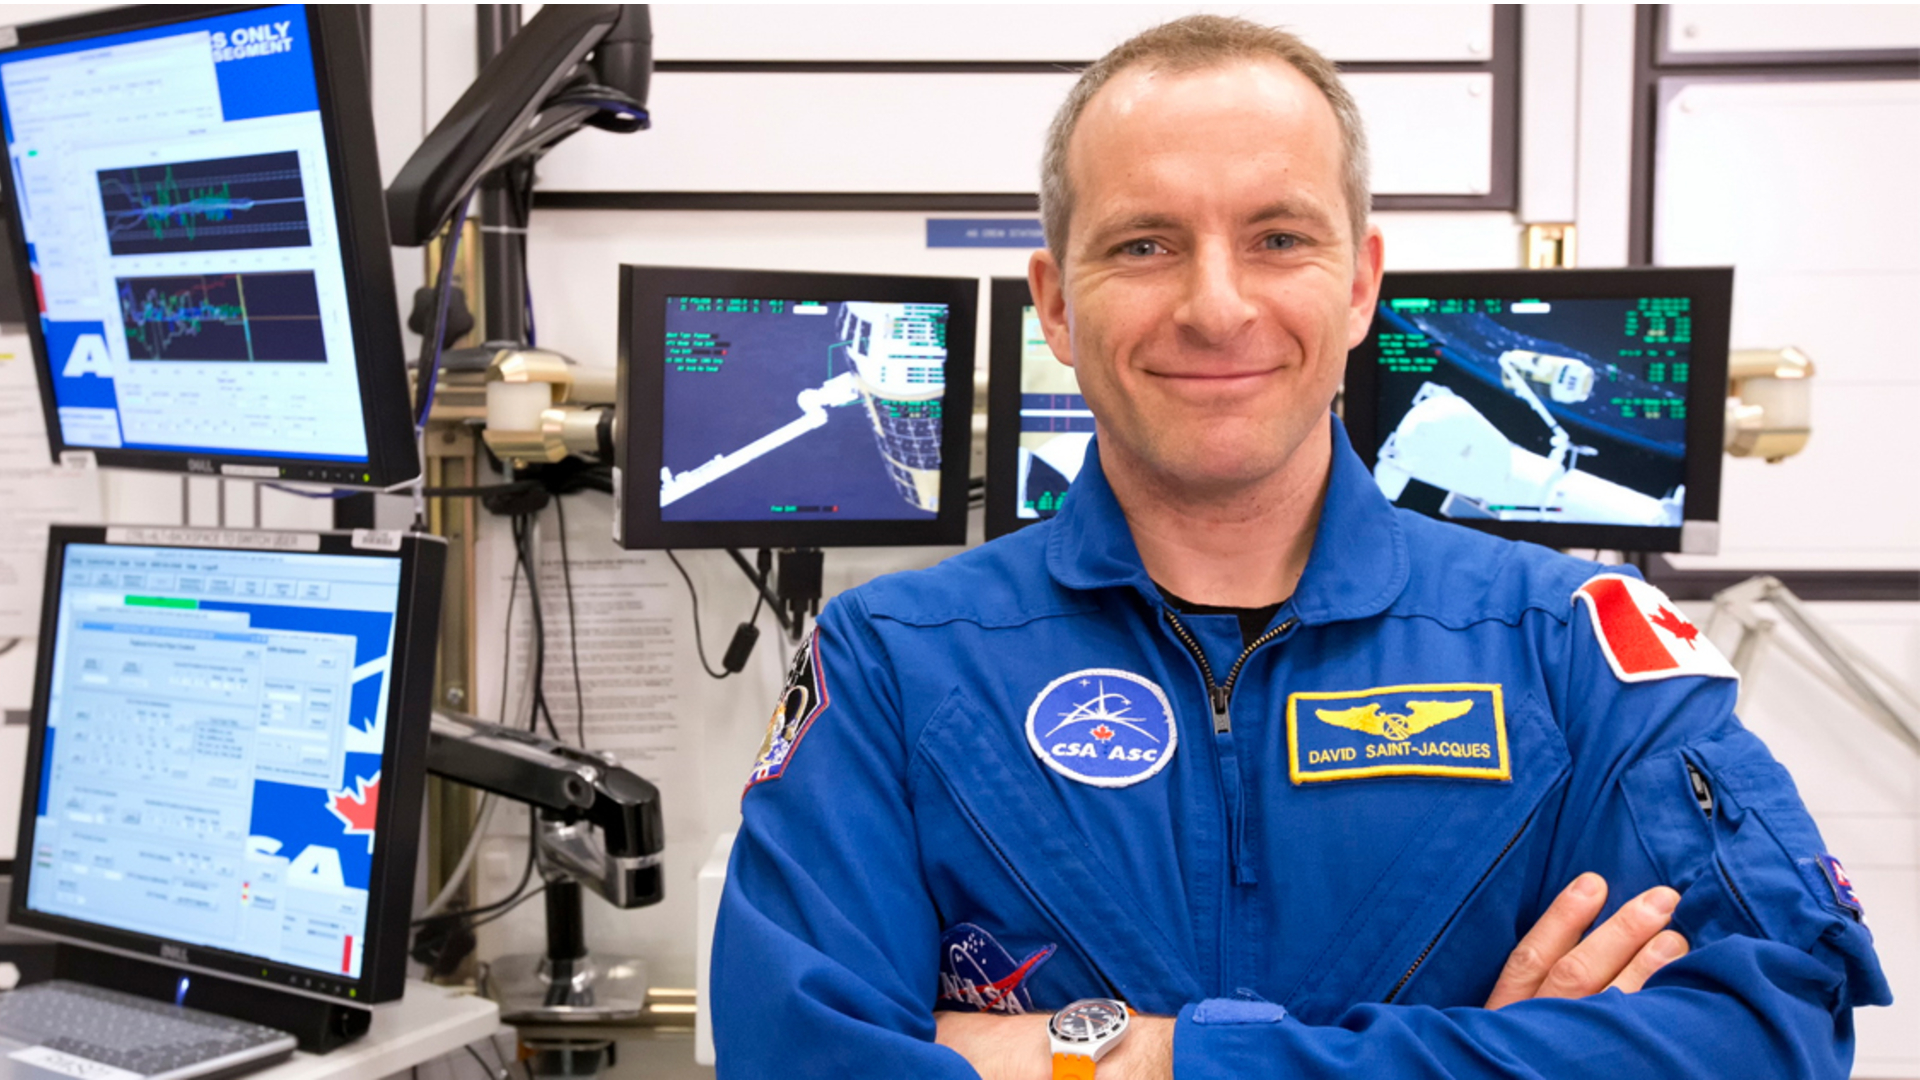 Astronaut Talks Physical/Mental Health, Space And Mars